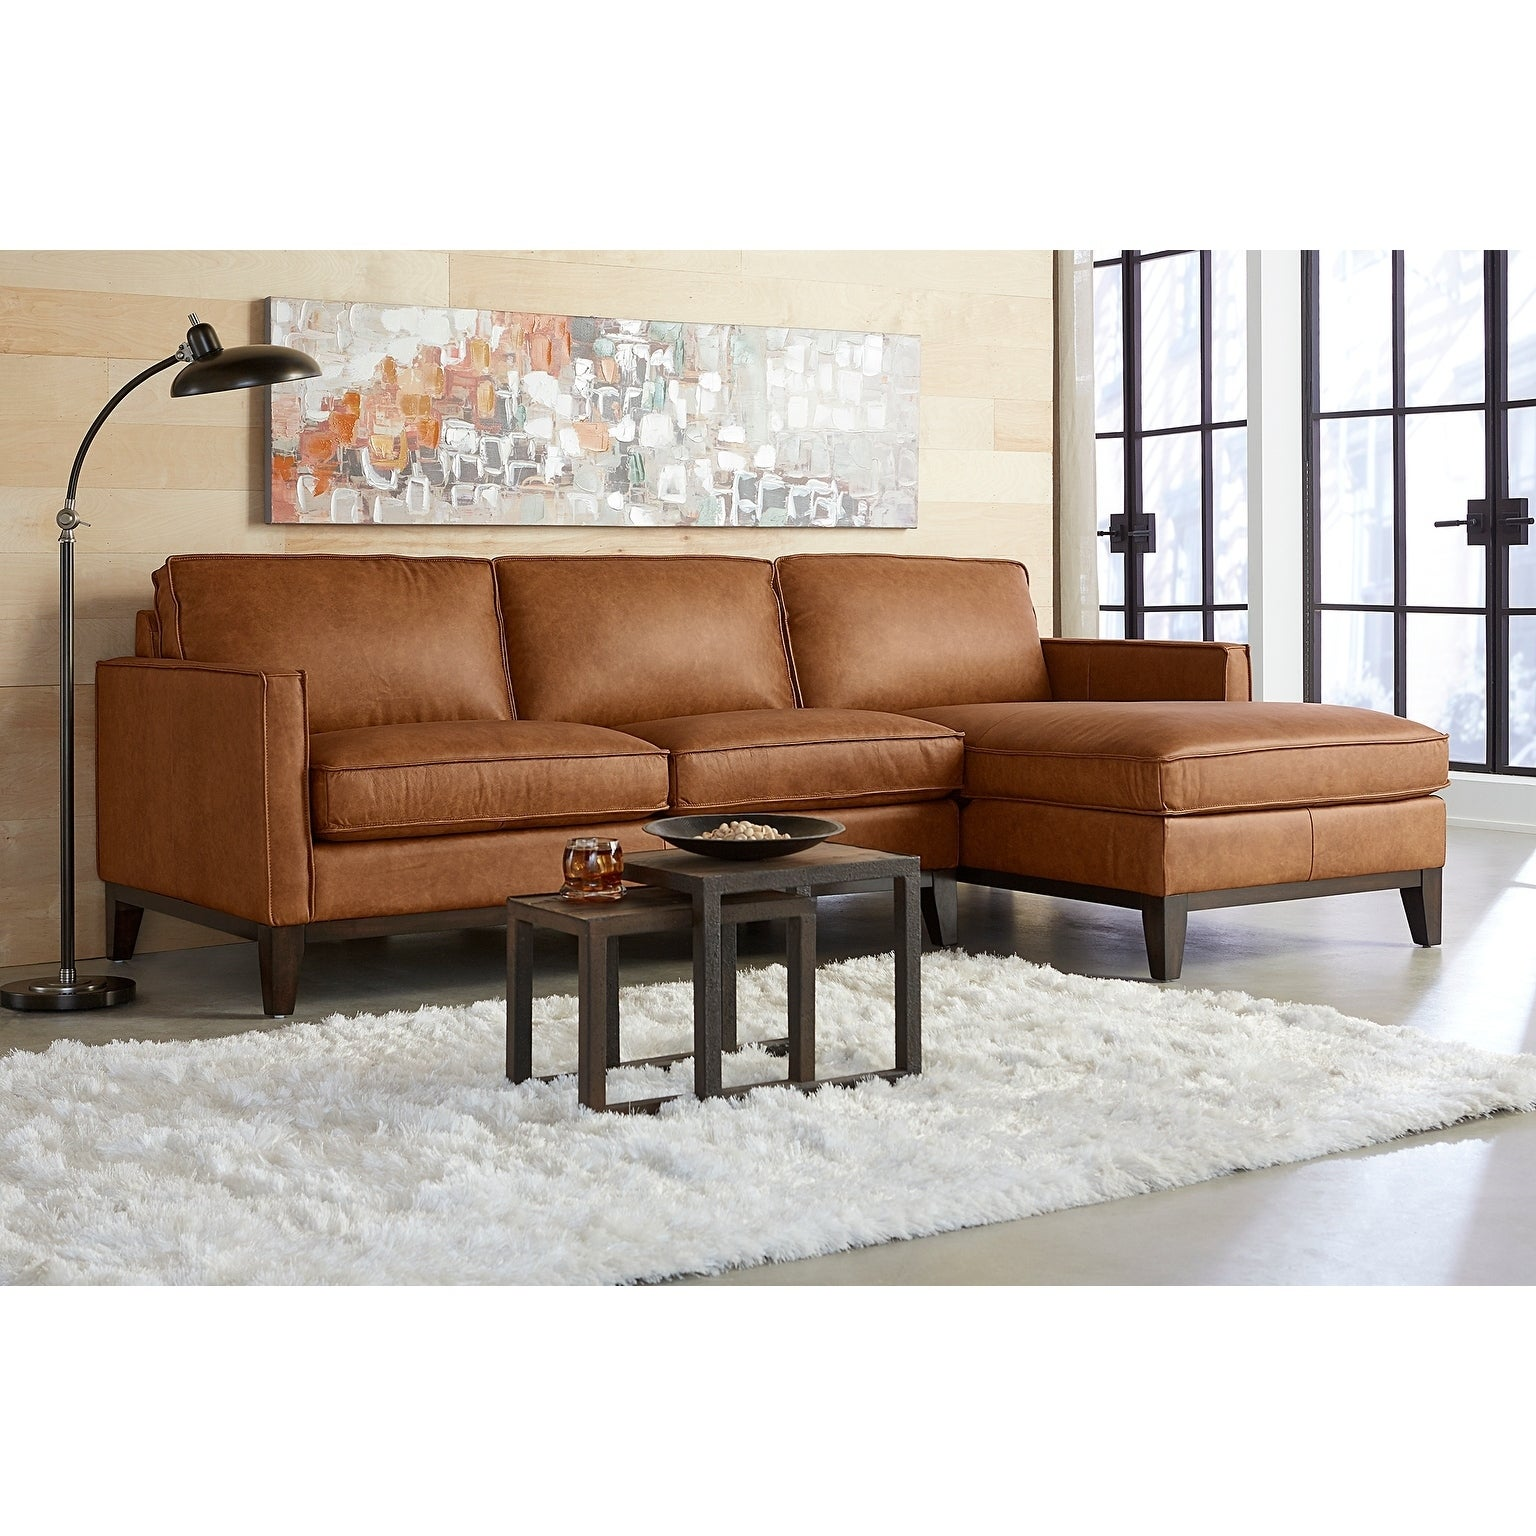 Olney Leather Sofa Chaise Right Arm Facing with Wood Base